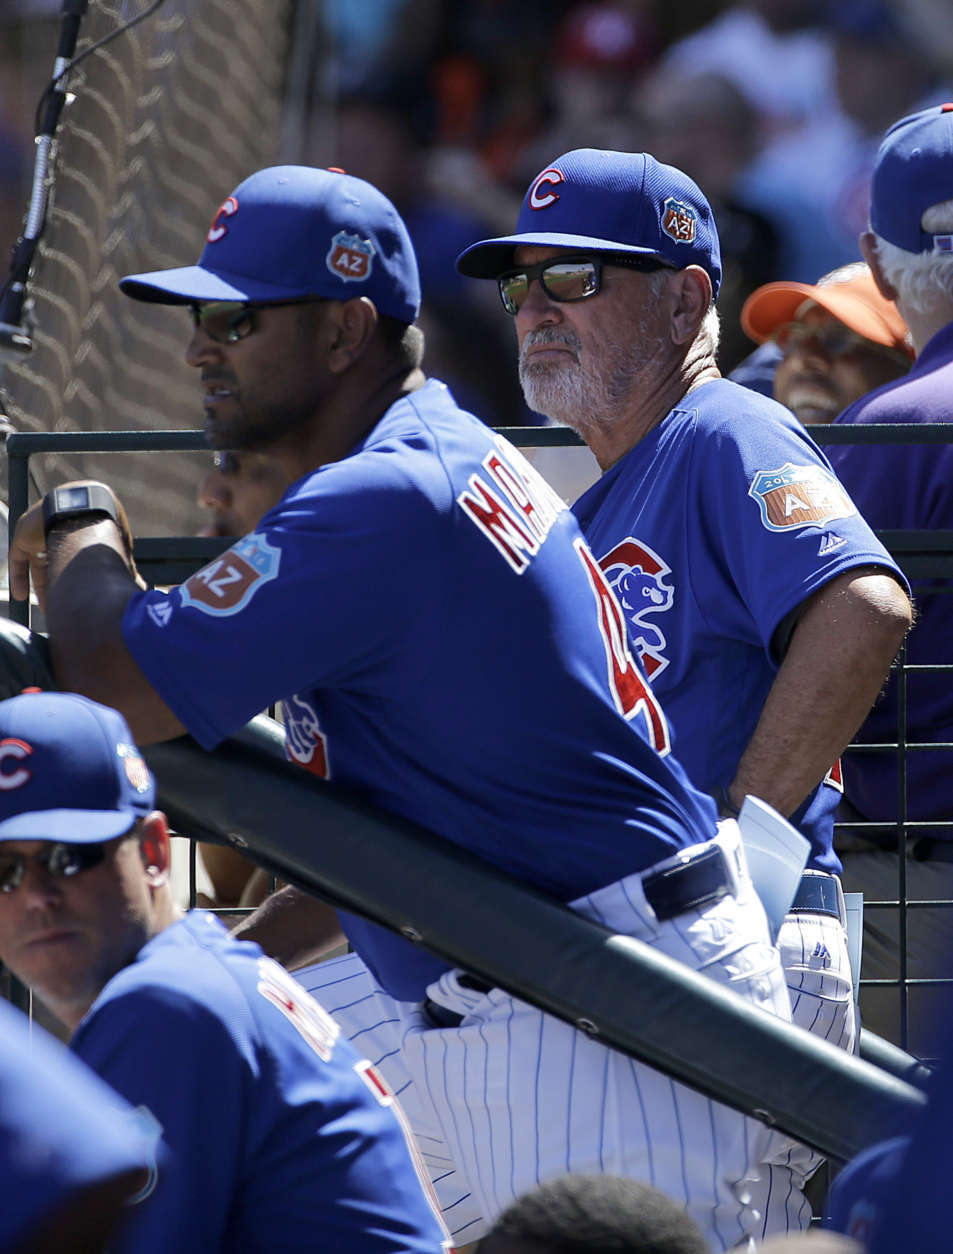 Chicago Cubs bench coach Dave Martinez, left, and manager Joe Maddon watch during a spring training baseball game between the Cubs and the San Francisco Giants in Mesa, Ariz., Saturday, March 26, 2016. (AP Photo/Jeff Chiu)